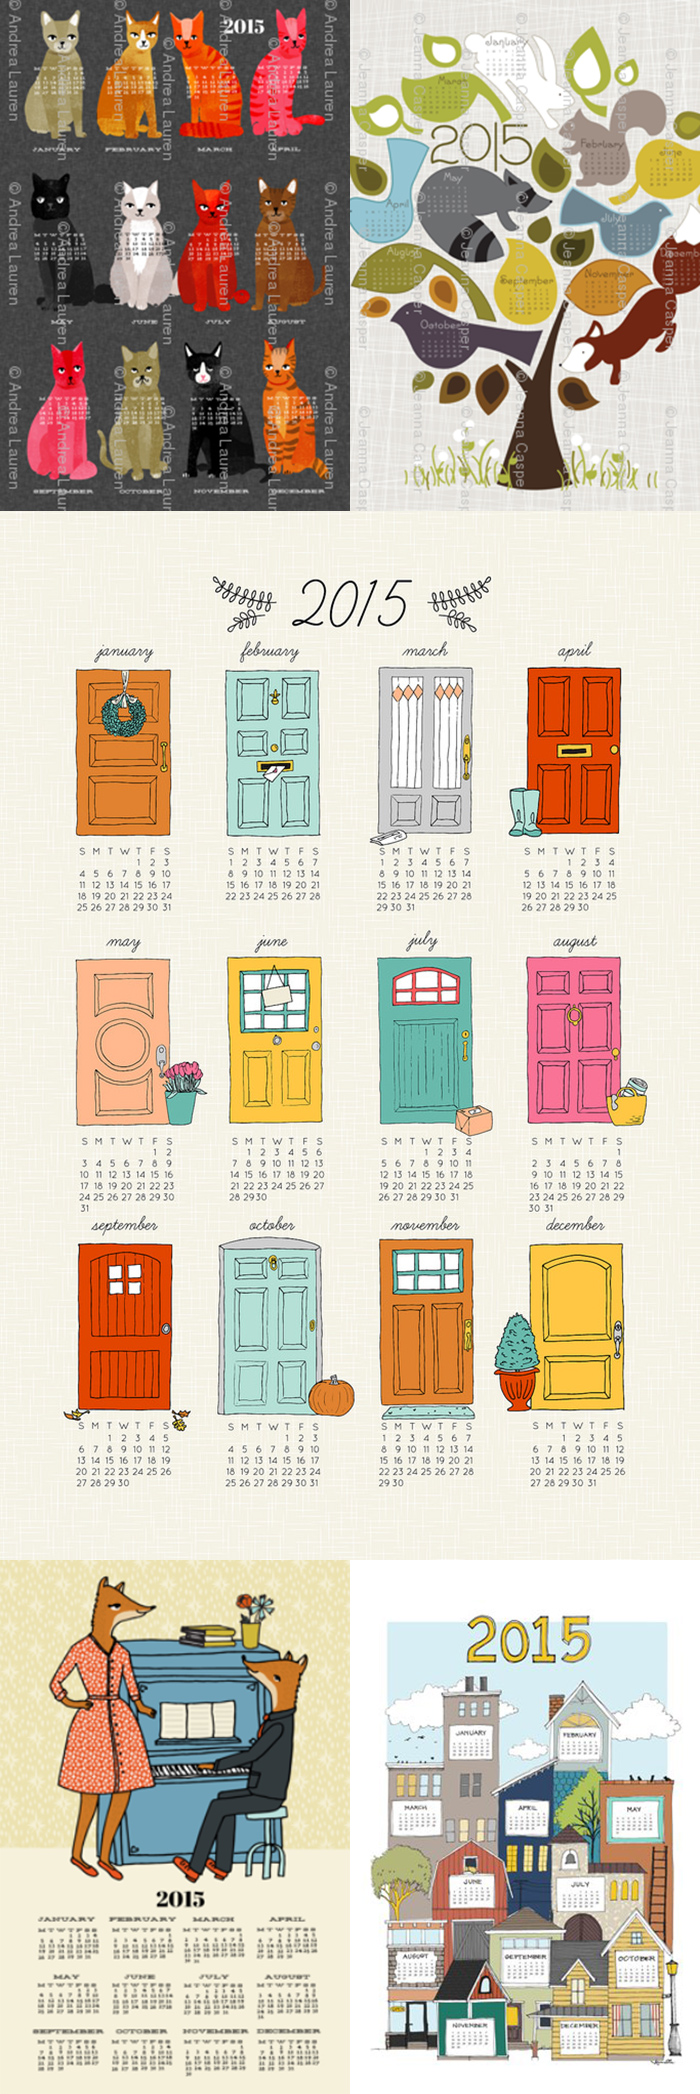 Fabric calendars from Spoonflower